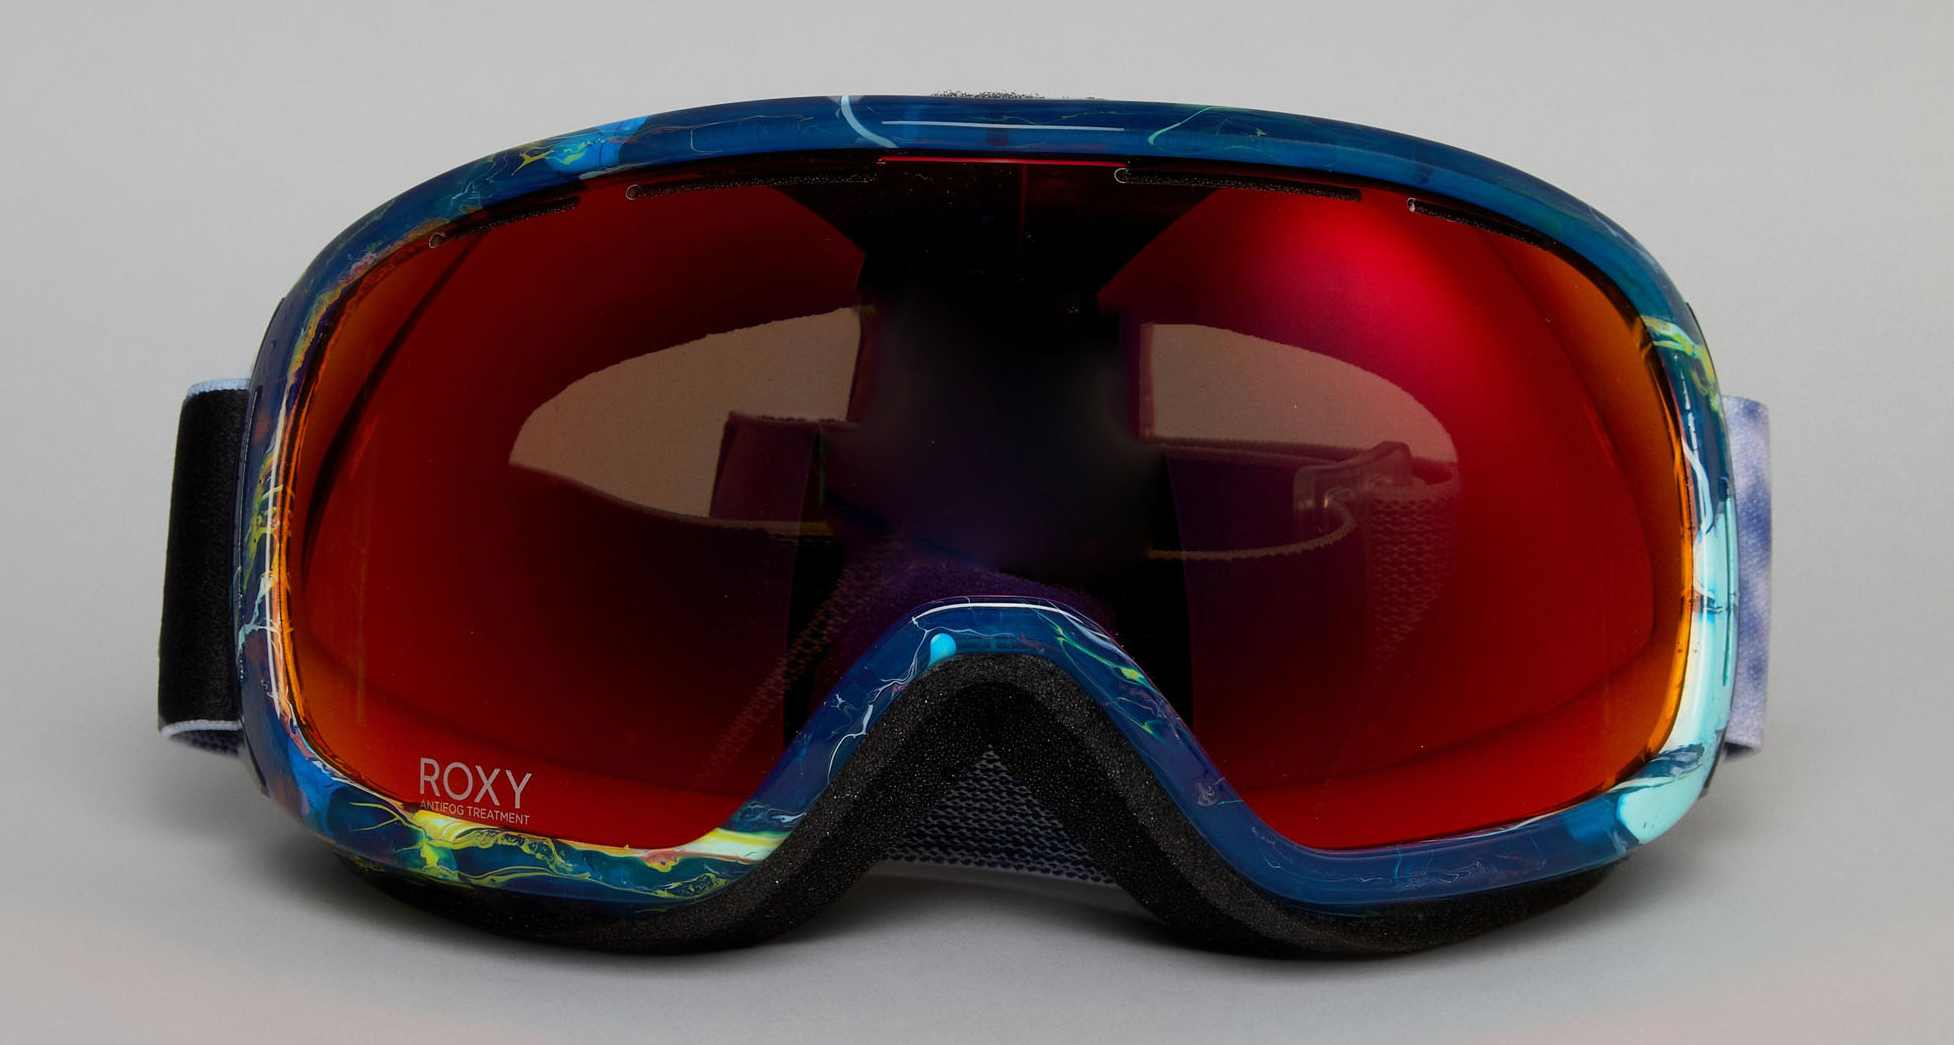 Roxy Women's Rockferry Printed Ski Goggles